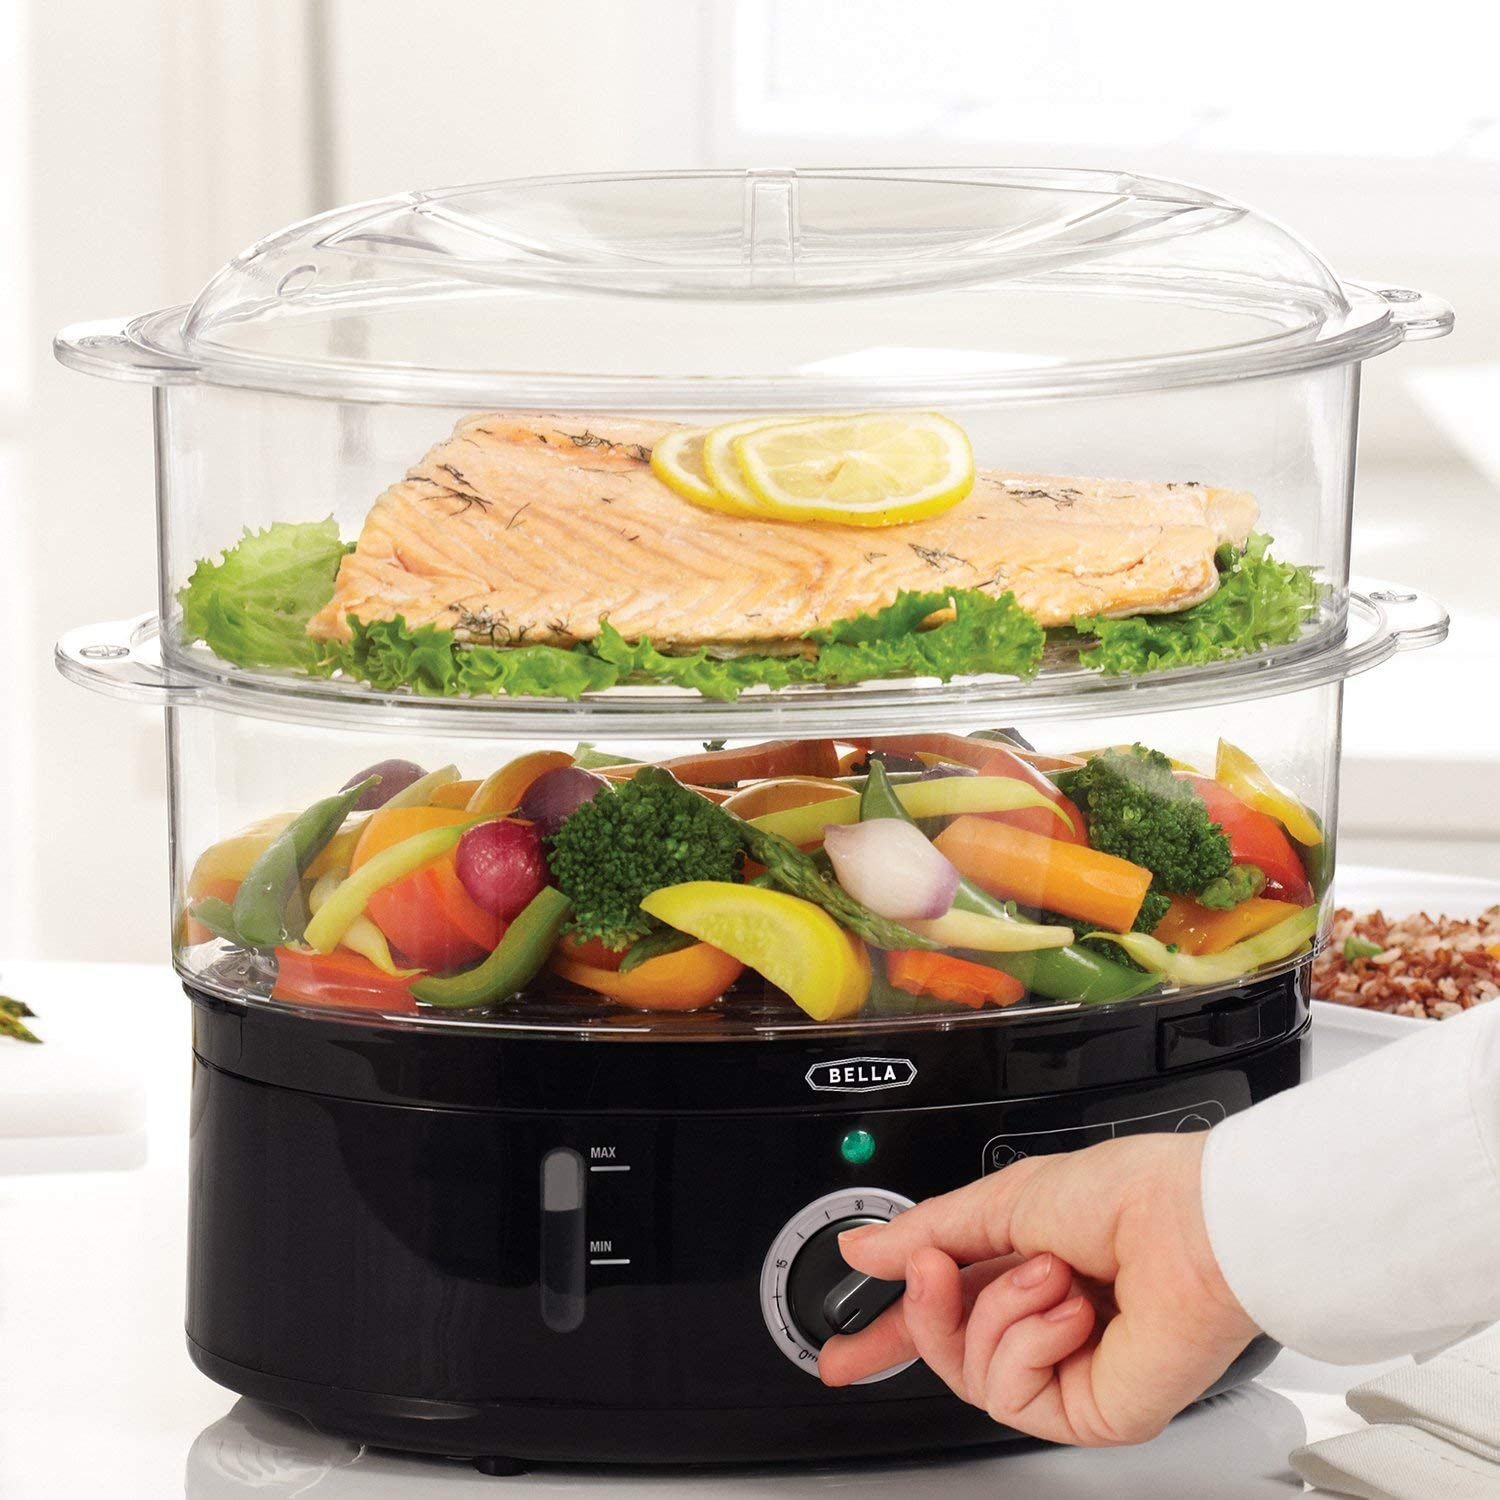 Bella 2-Tier 13872 Healthy Food Steamer